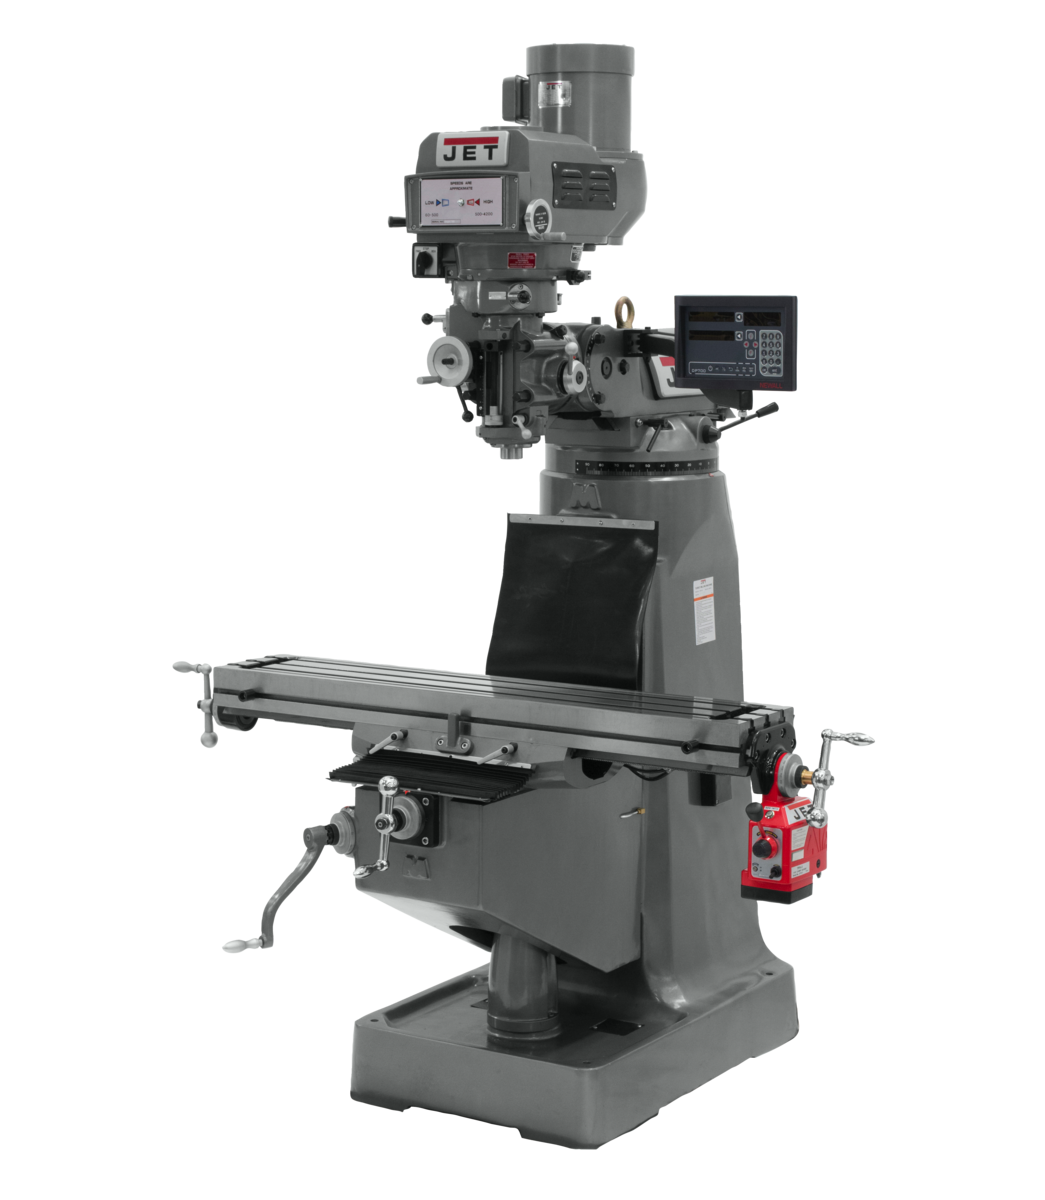 JTM-4VS Mill With 3-Axis Newall DP700 DRO (Knee) With X-Axis Powerfeed